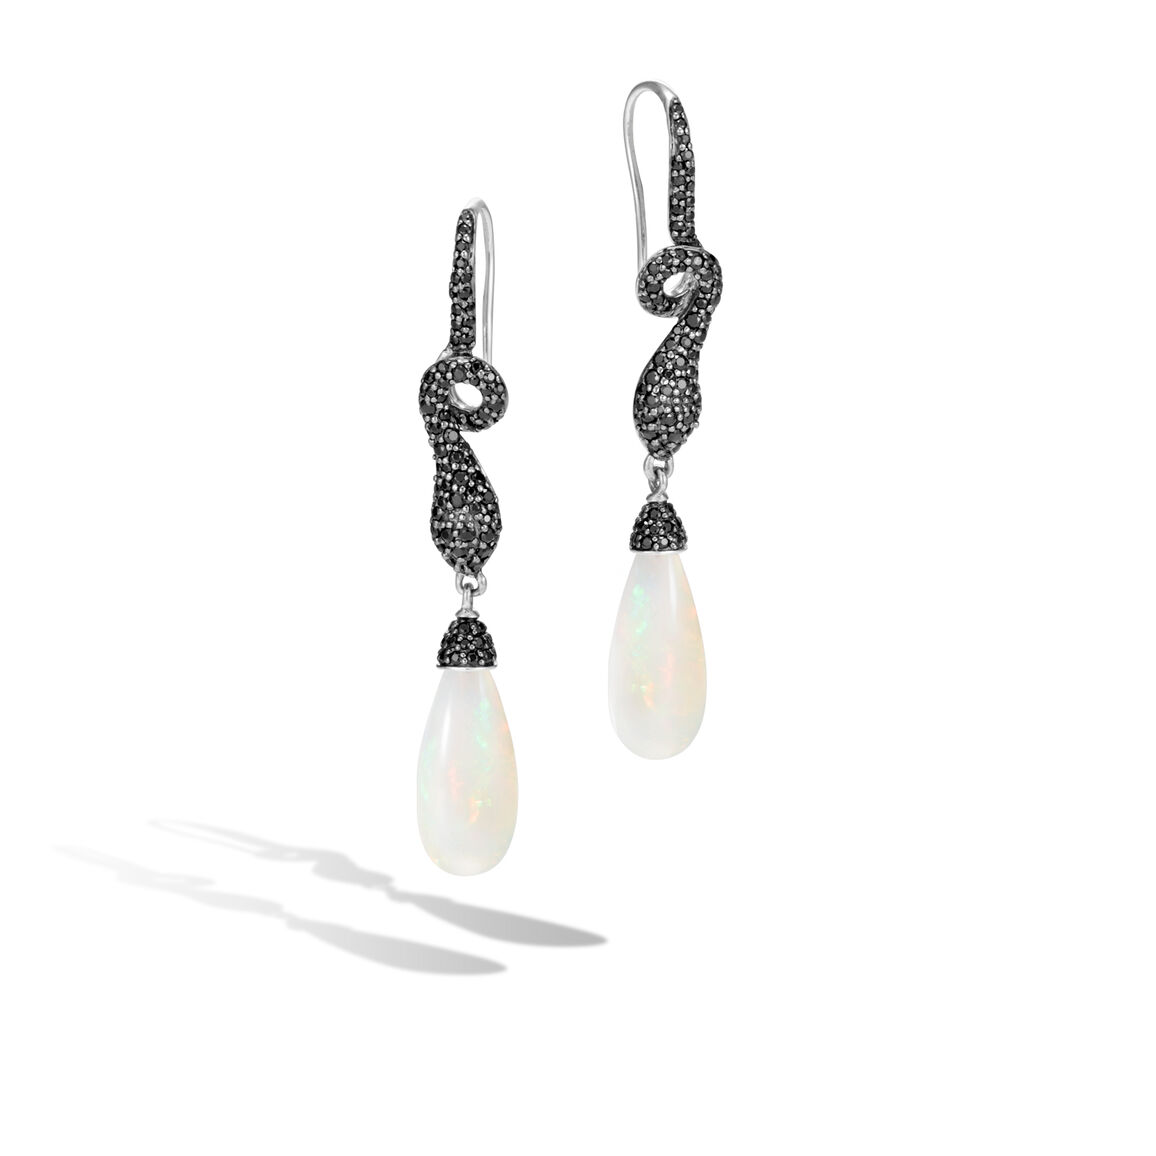 Legends Cobra Drop Earring in Silver, 20x9MM Gemstone